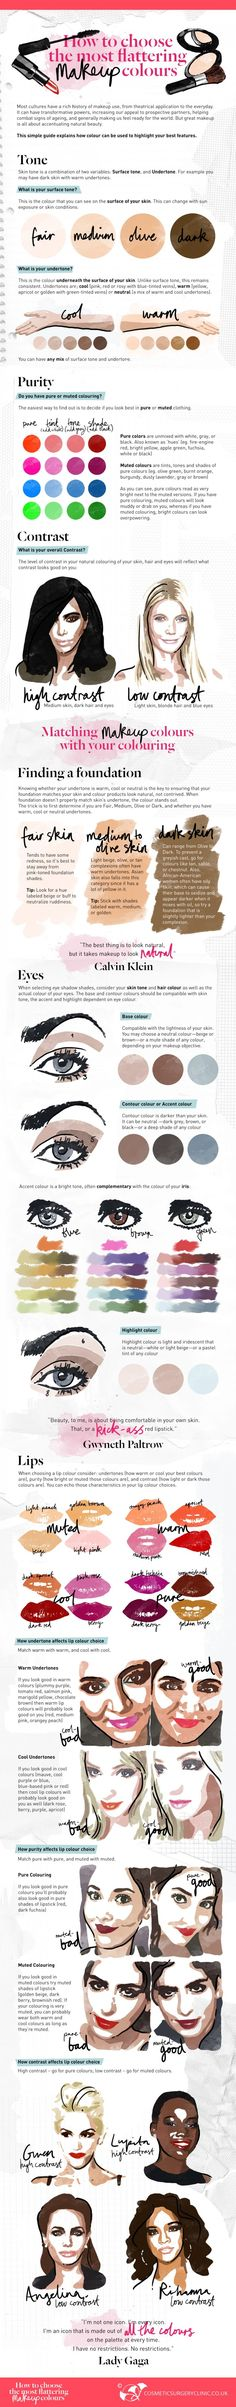 How to Choose the Most Flattering Makeup Colors for Your Skin Tone http://makeuptutorials.com/makeup-colors-by-skin-tone-makeup-tutorials/